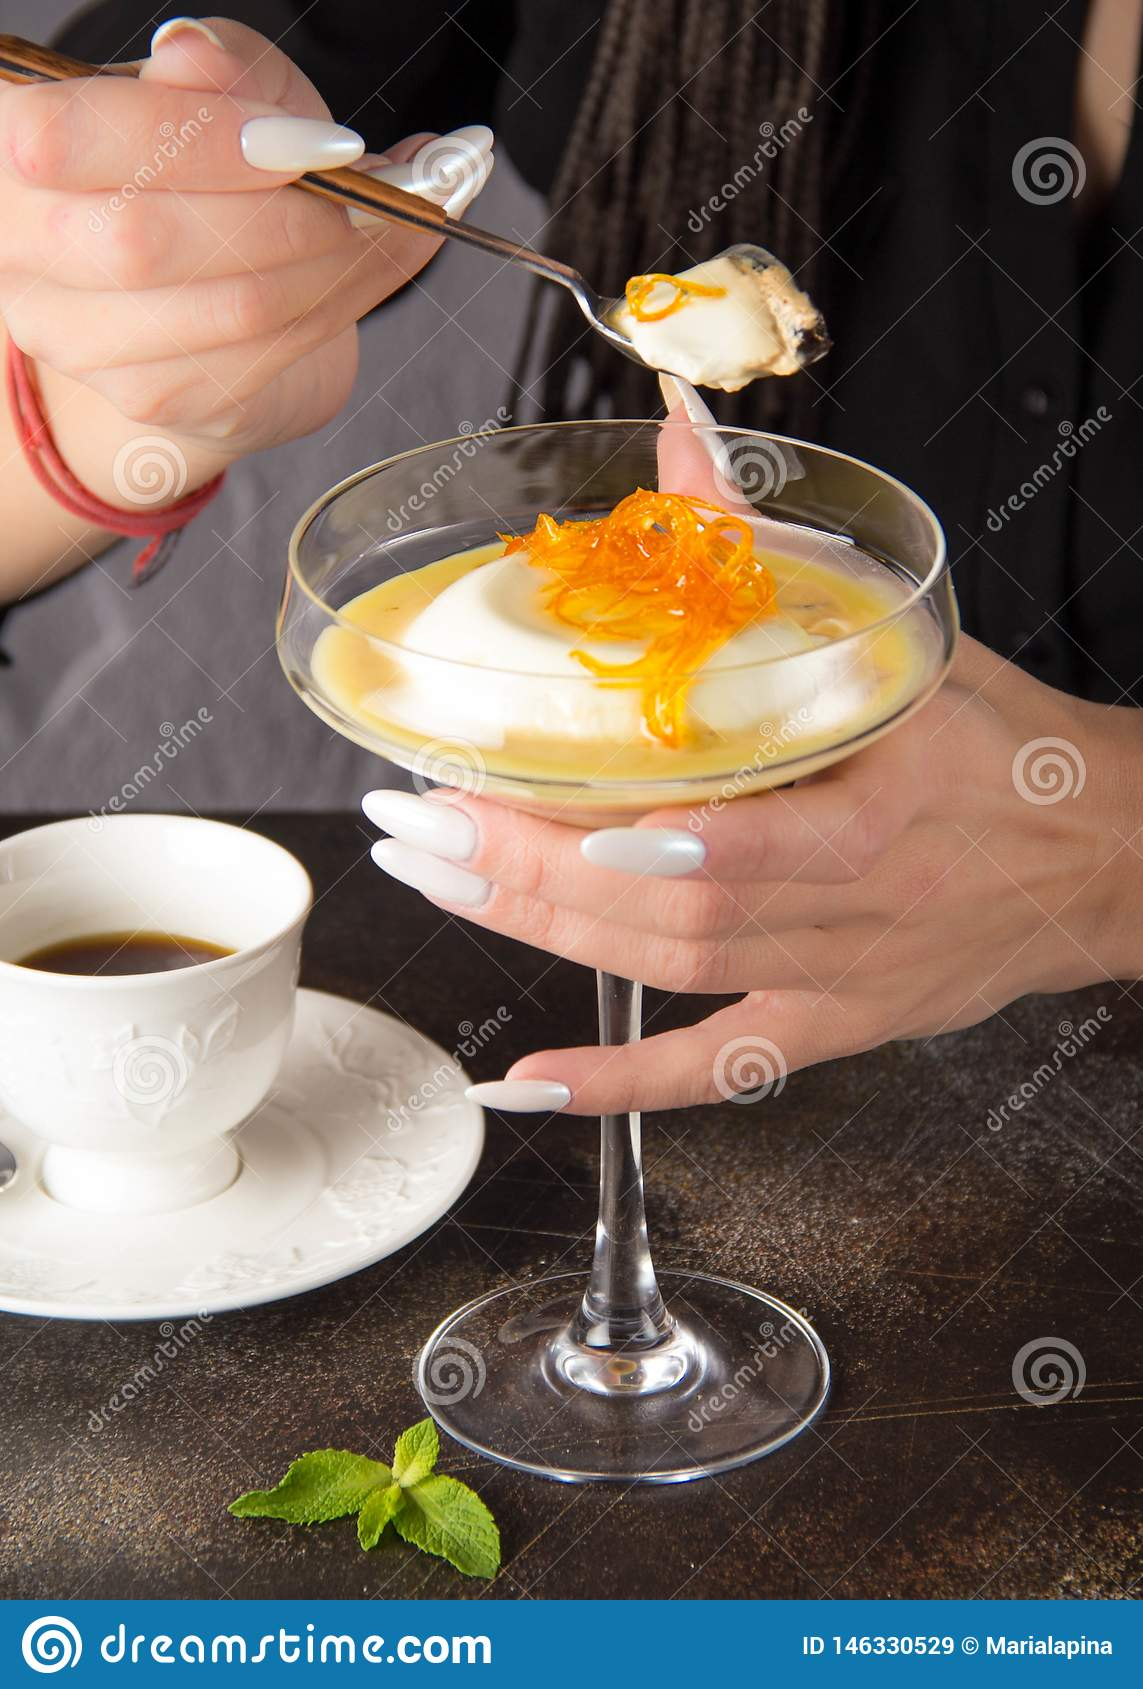 Classic dessert Panna cotta in glass with orange caramel and coffee, a woman eats with spoon